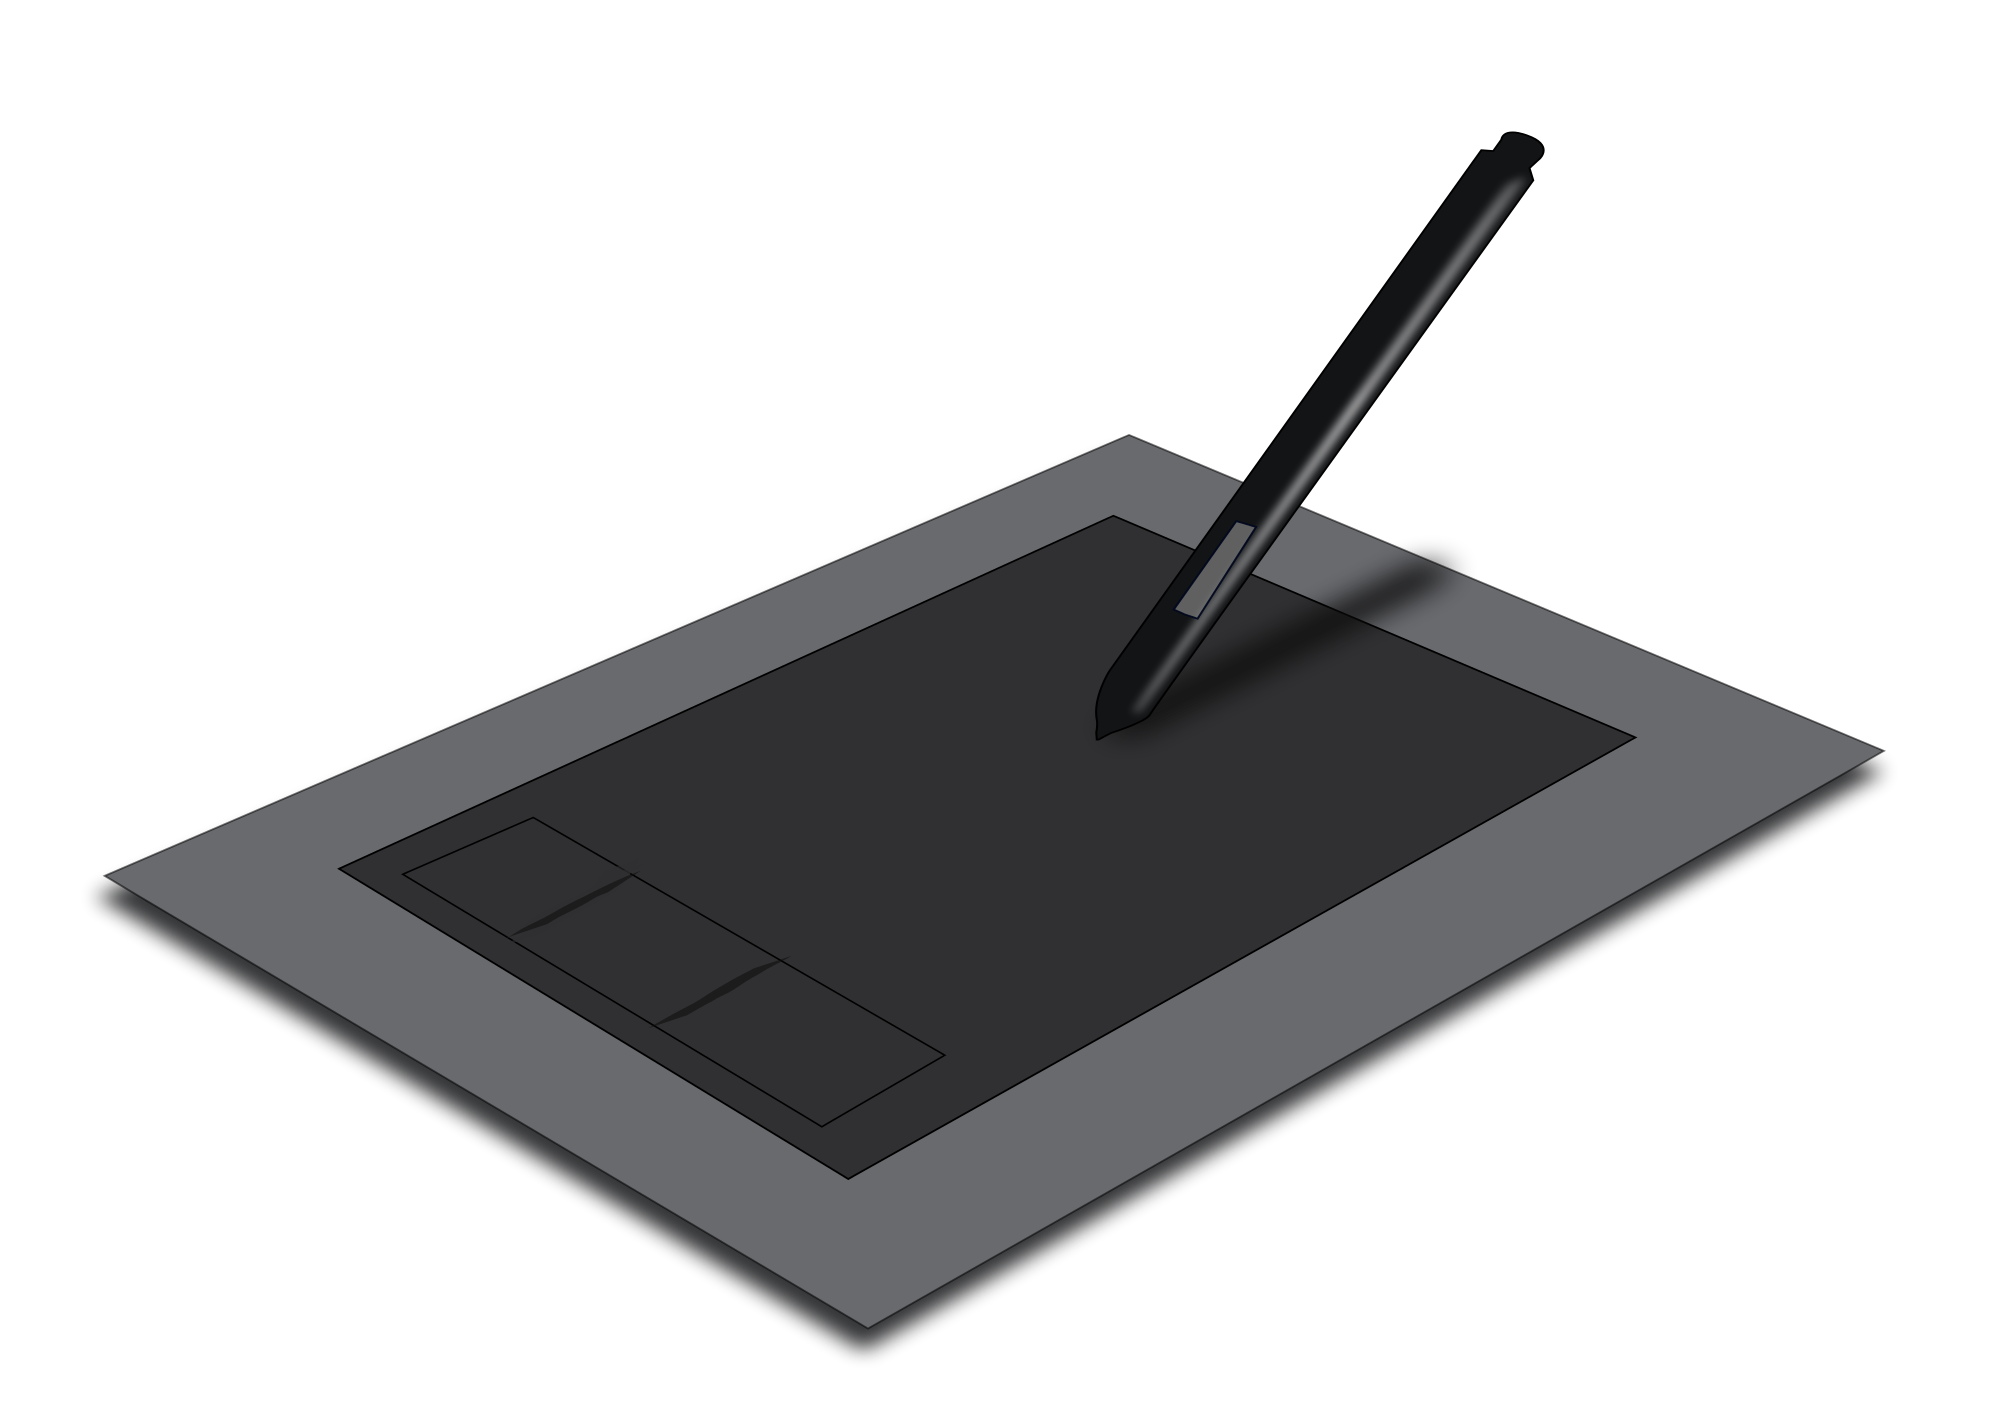 Drawing tablety transparent. Collection of tablet